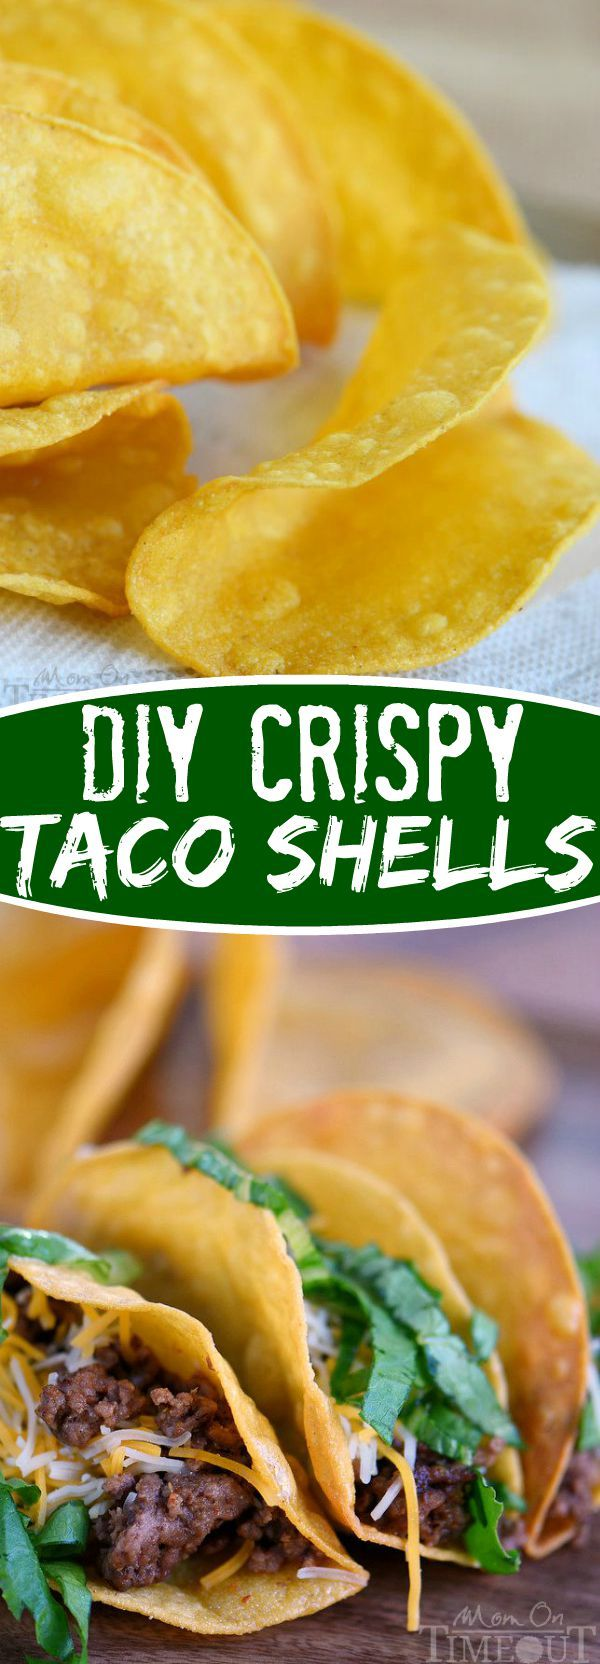 DIY Crispy Taco Shells - easy step by step instructions will have you eating delicious, crunchy tacos tonight! | eBay